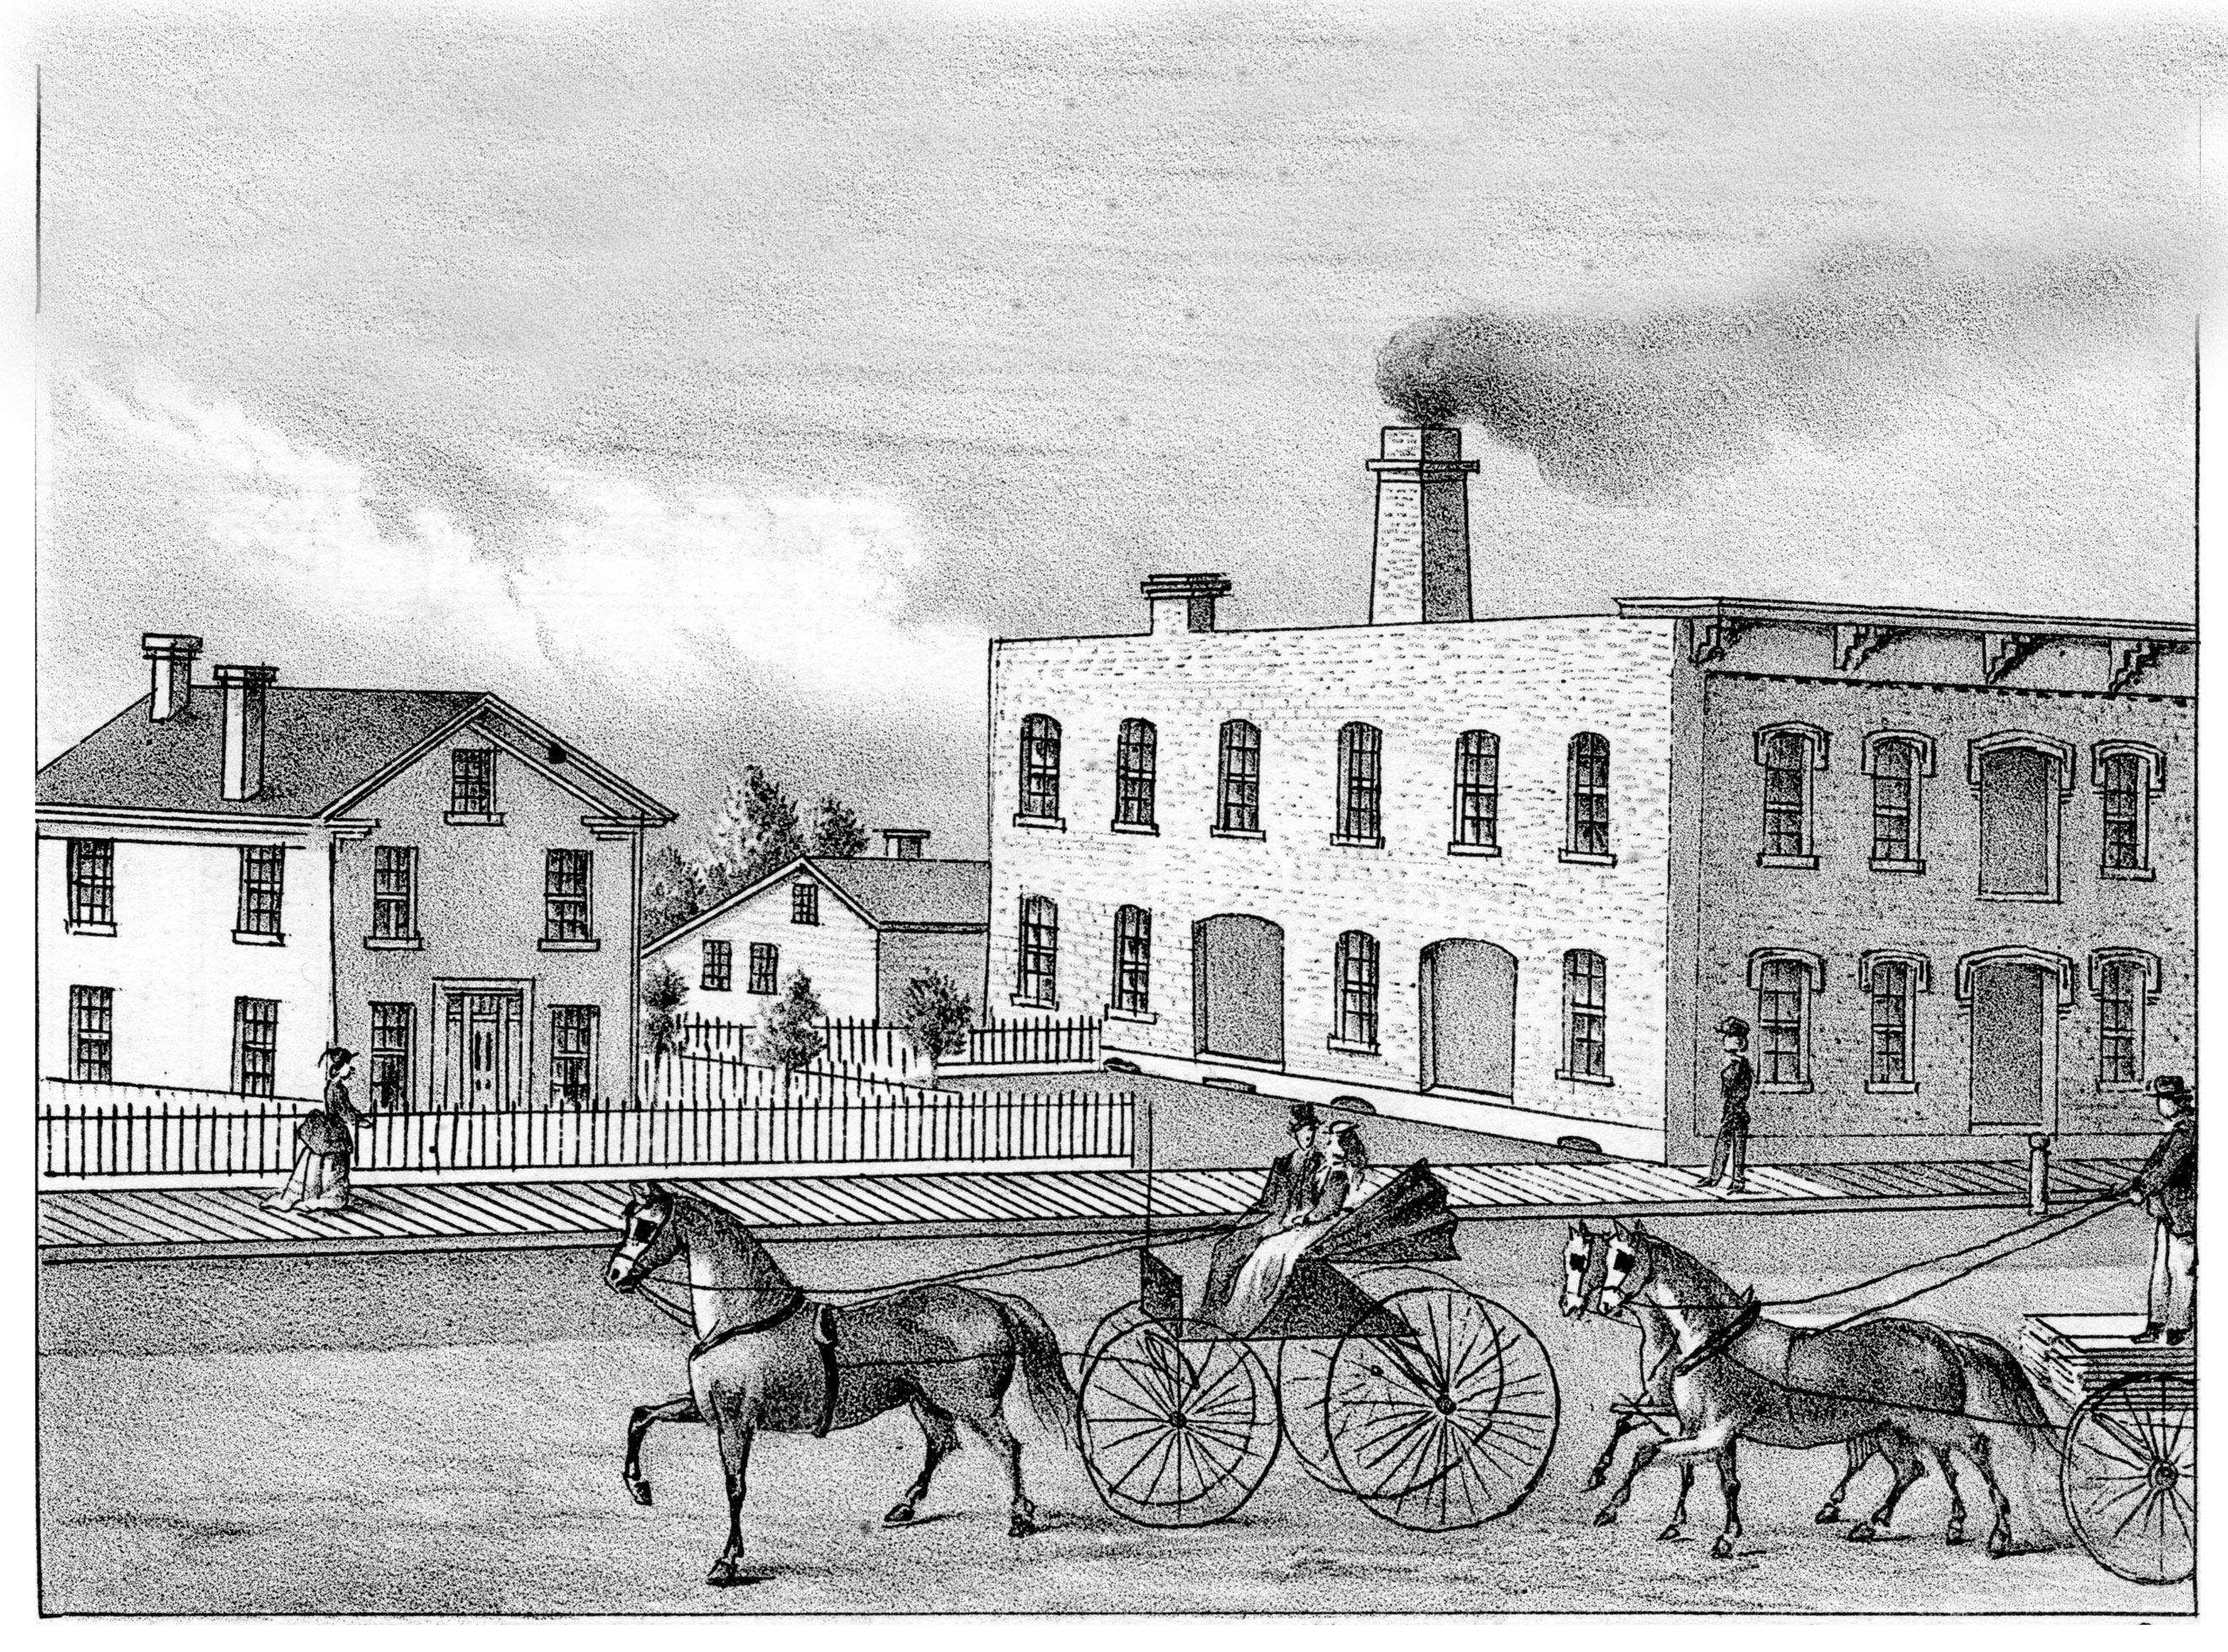 Miller's Planing Mill, 529 Detroit Street, 1874 (later the Treasure Mart) image